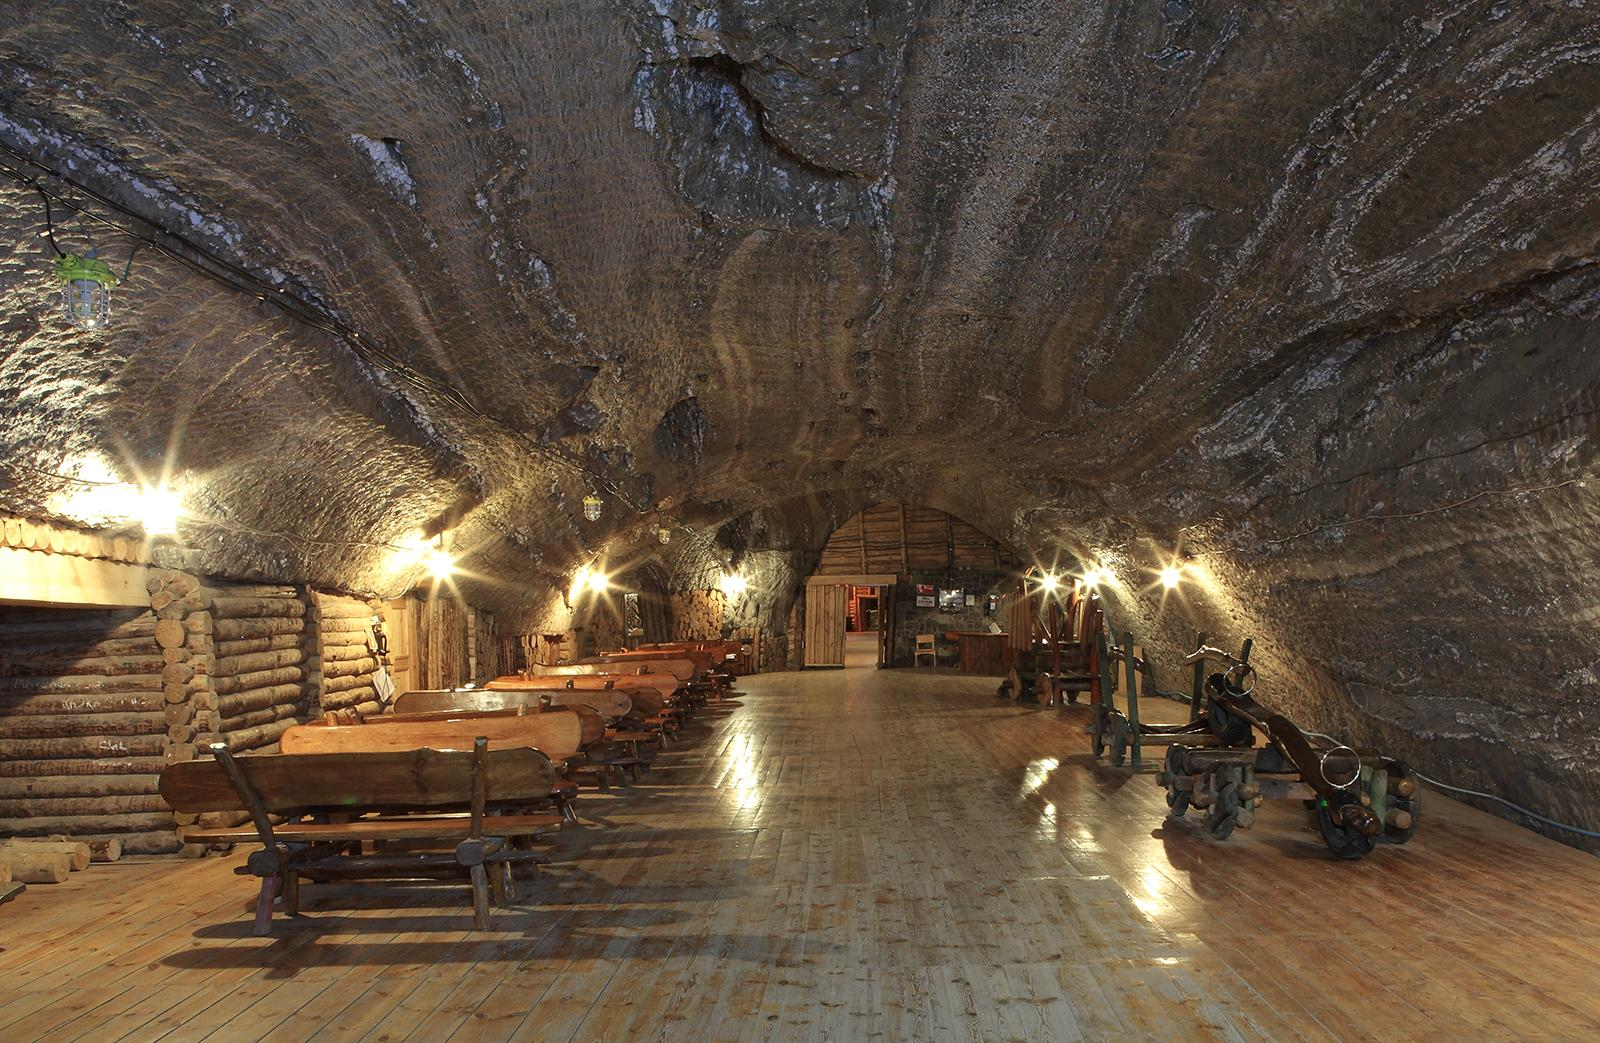 The Ważyn Chamber is the heart of the Bochnia Salt Mine. It is 255 metres long and seven metres high. It is interesting to note that it lies exactly on the level of the Baltic Sea. – © Janina Wrzak